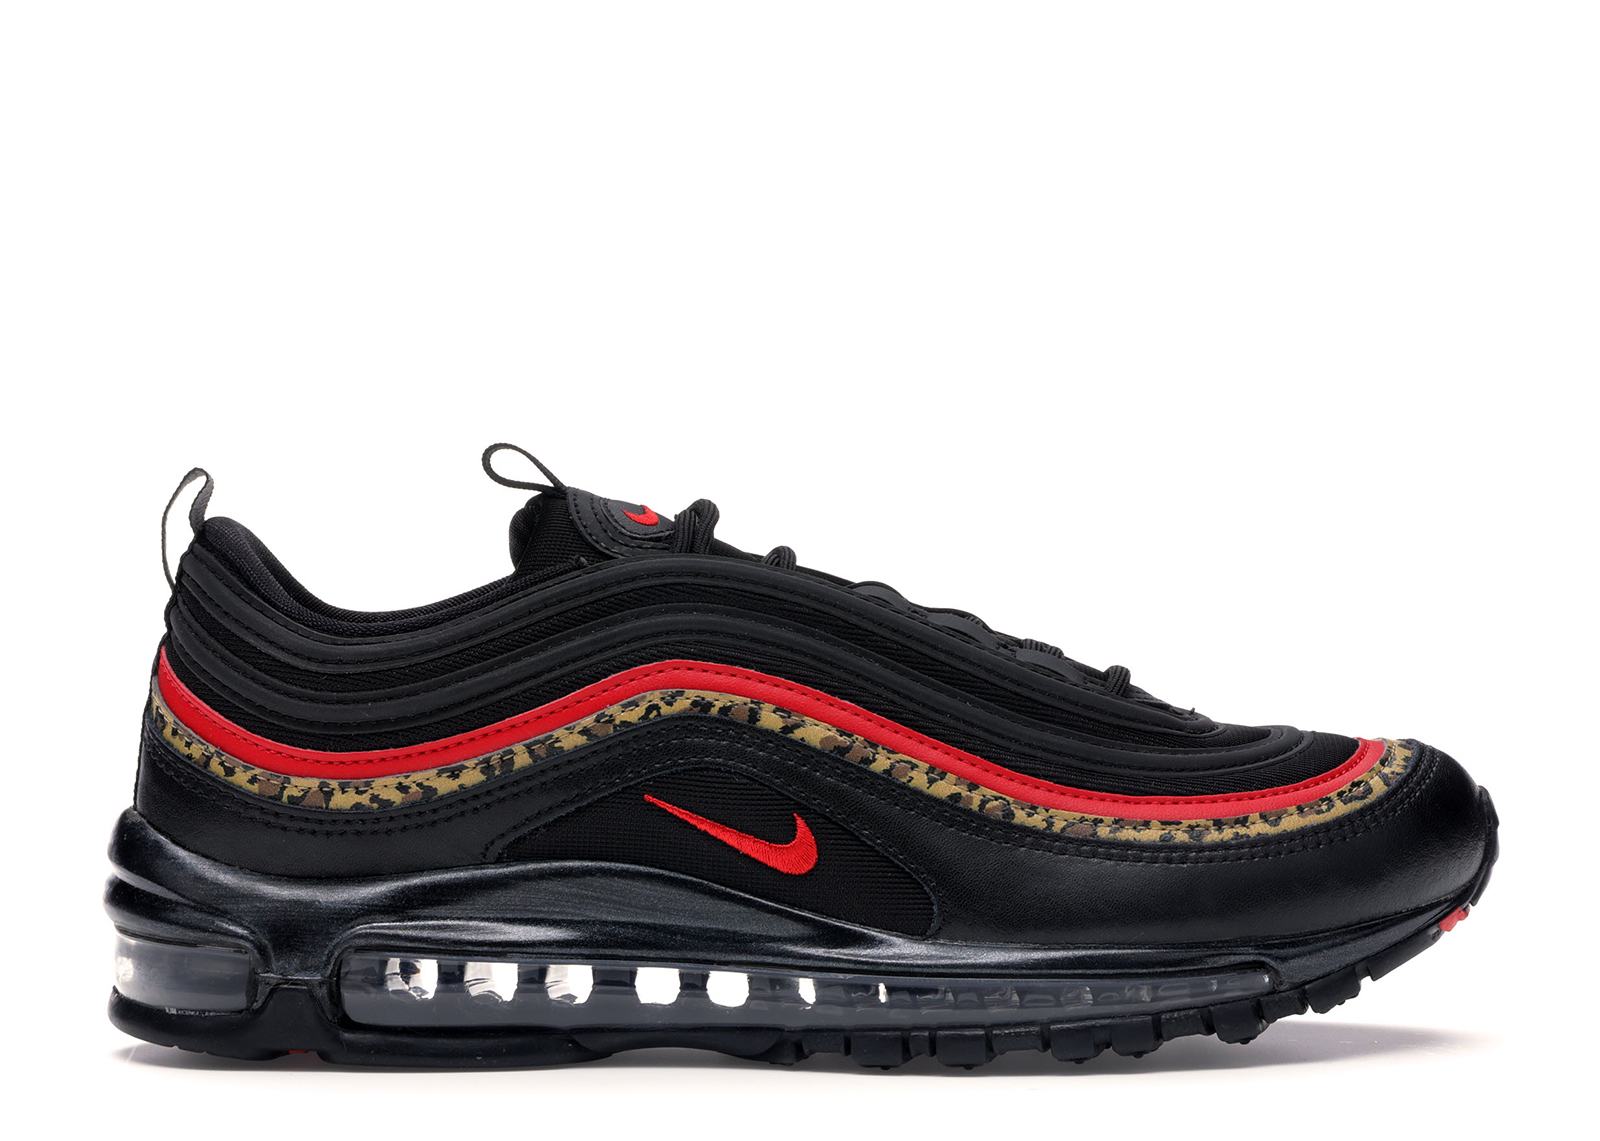 Air Max 97 Leopard Pack Black (W)